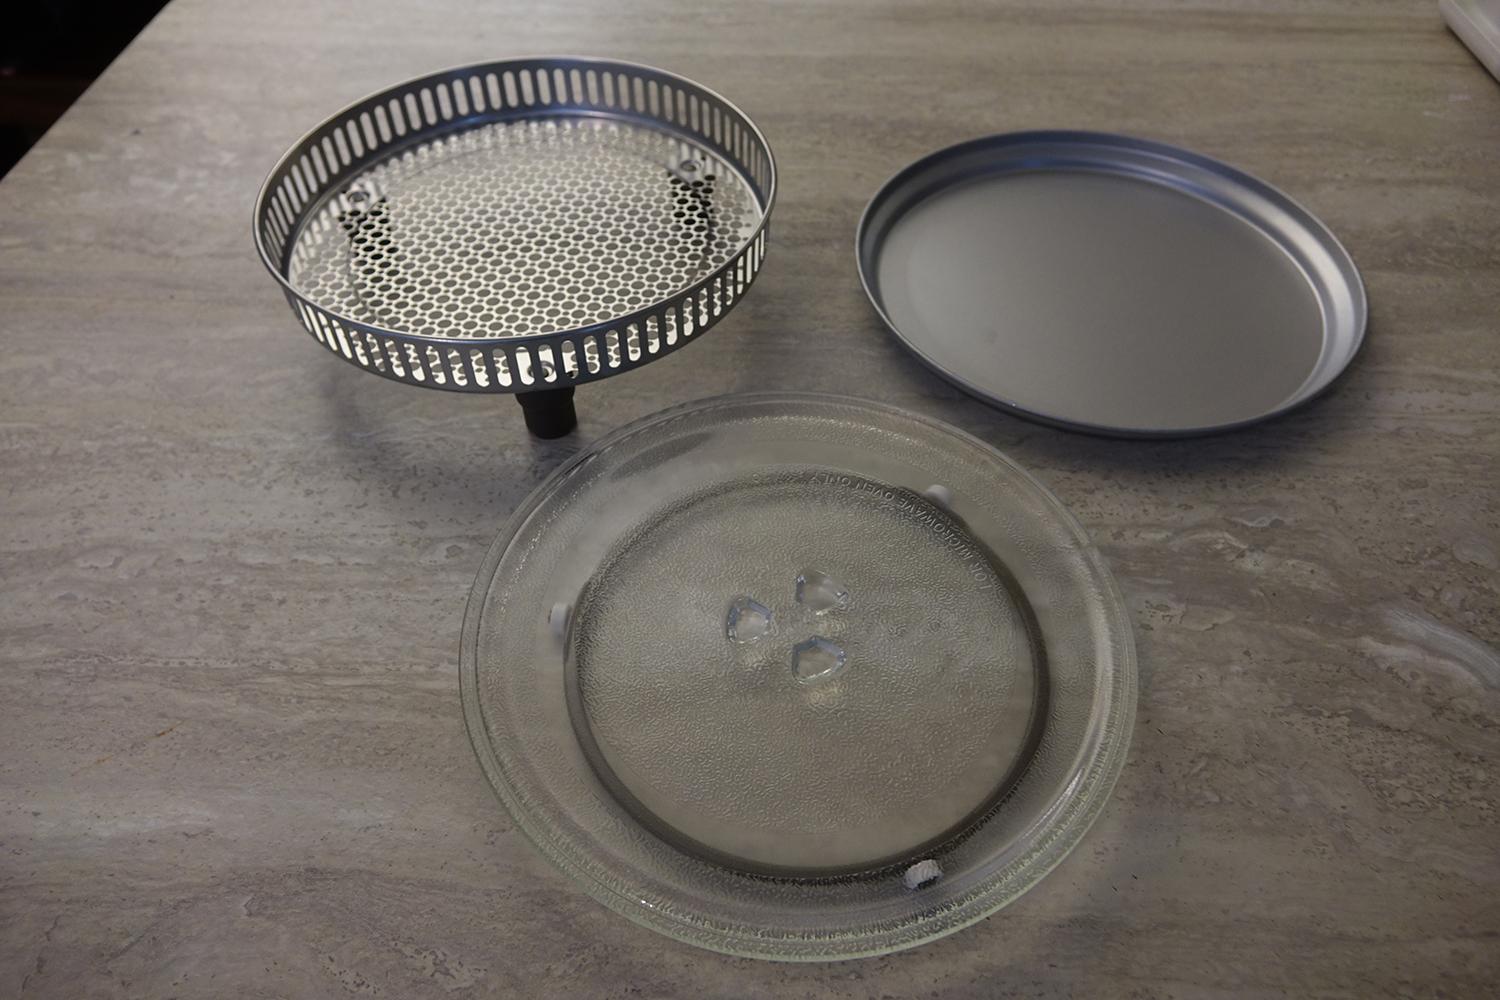 Cuisinart 3-in-1 microwave oven accessories